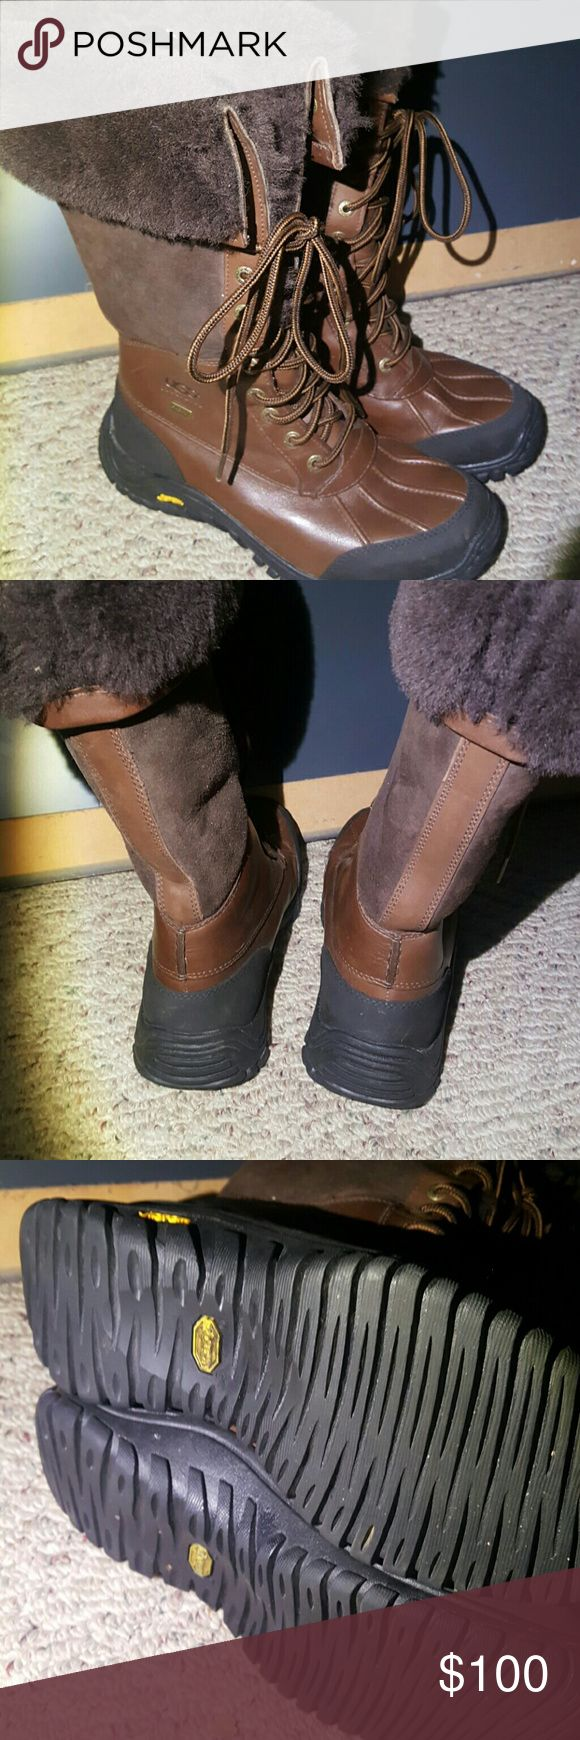 Authentic UGG snow boots Excellent condition UGG boots. UGG Shoes Winter & Rain Boots